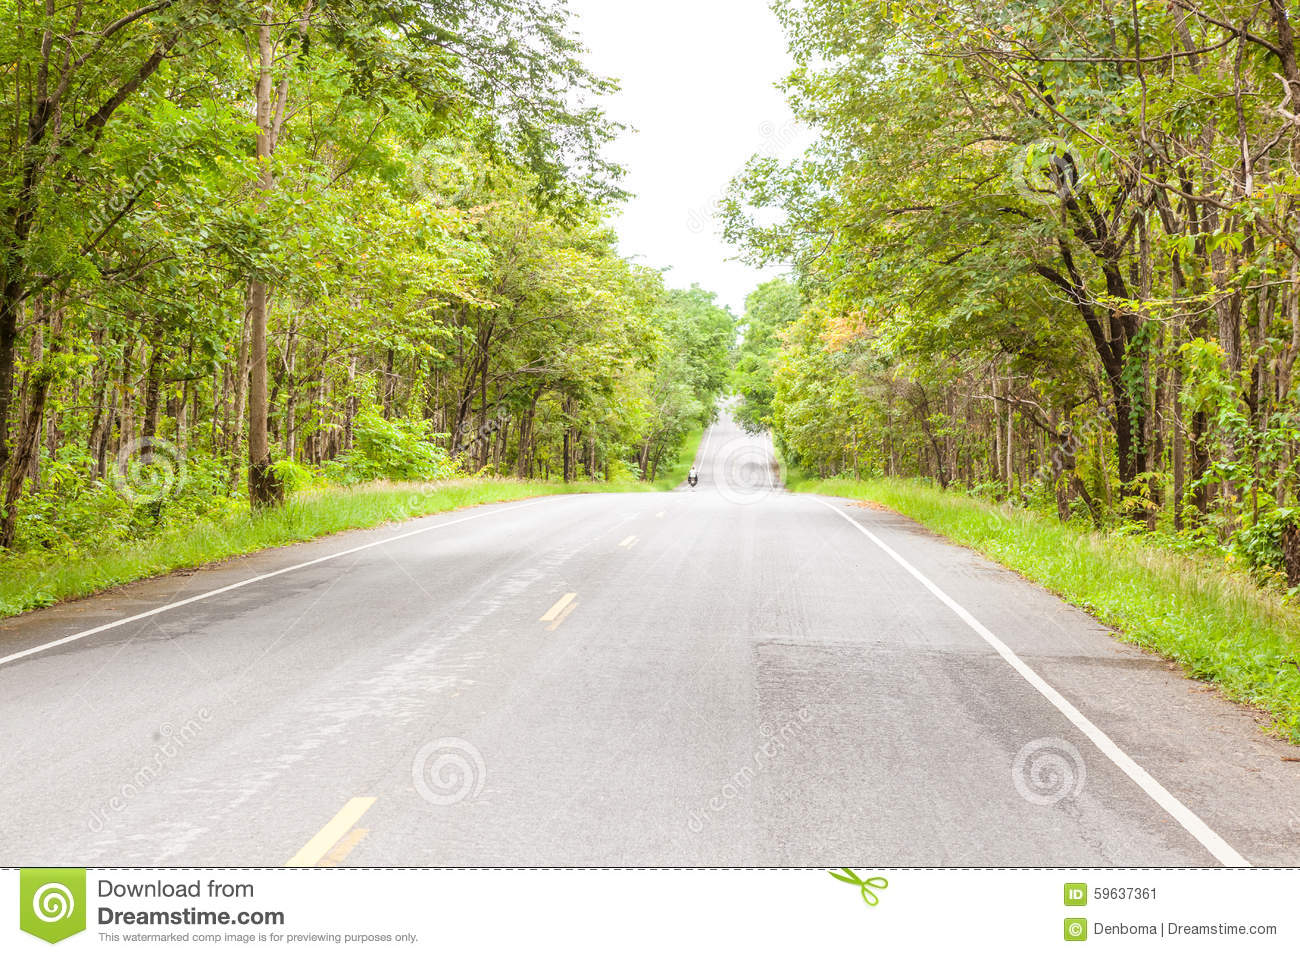 Uthai Thani Thailand  city pictures gallery : road forest uthai thani thailand 59637361